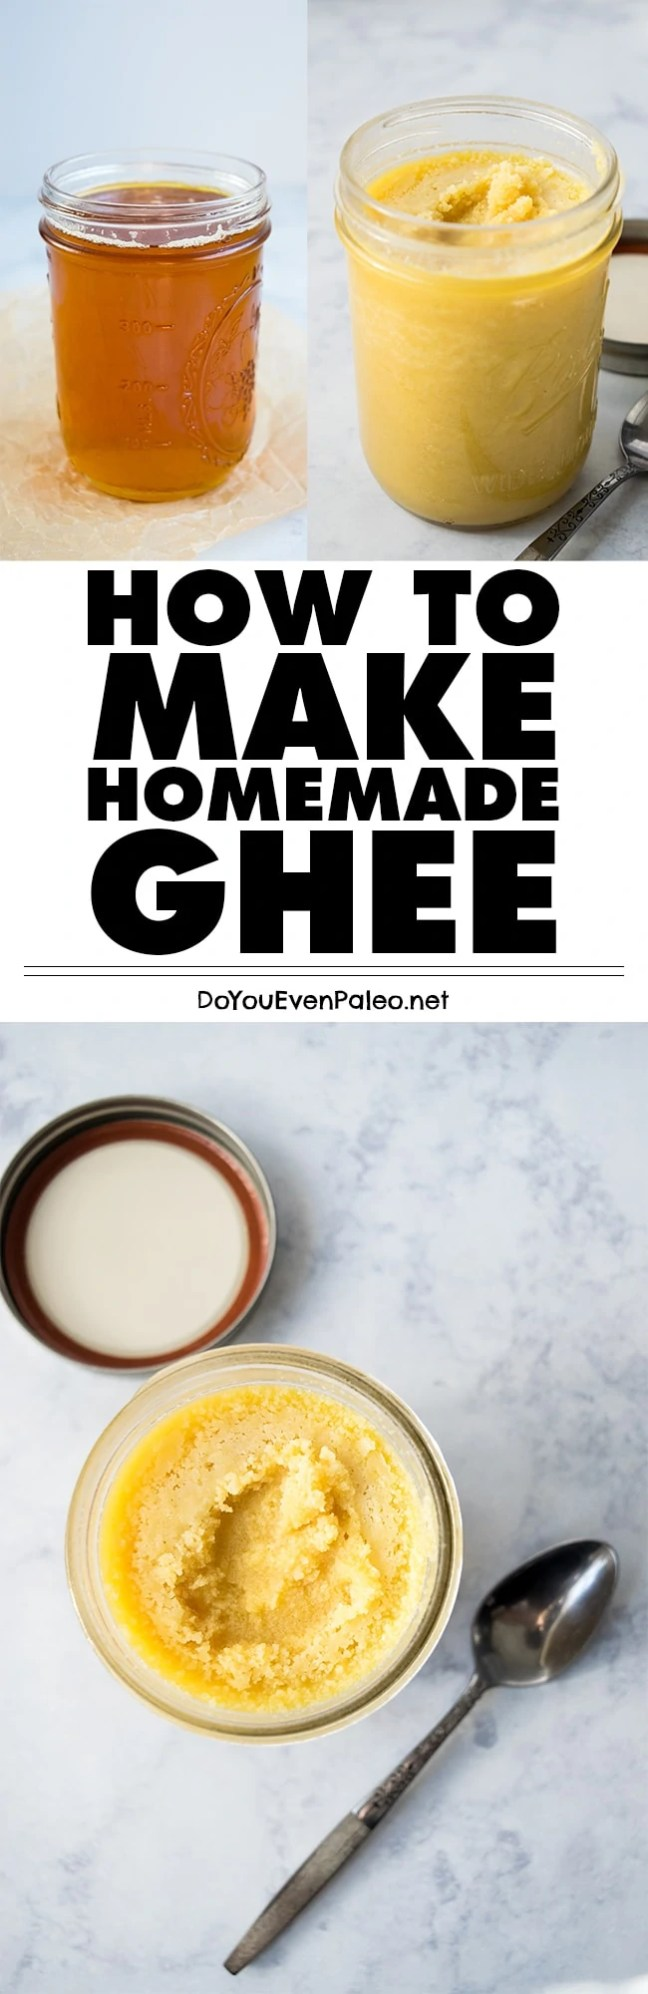 Making your own ghee is way easier than you might think. Find out how to make homemade ghee, a dairy free staple! | DoYouEvenPaleo.net